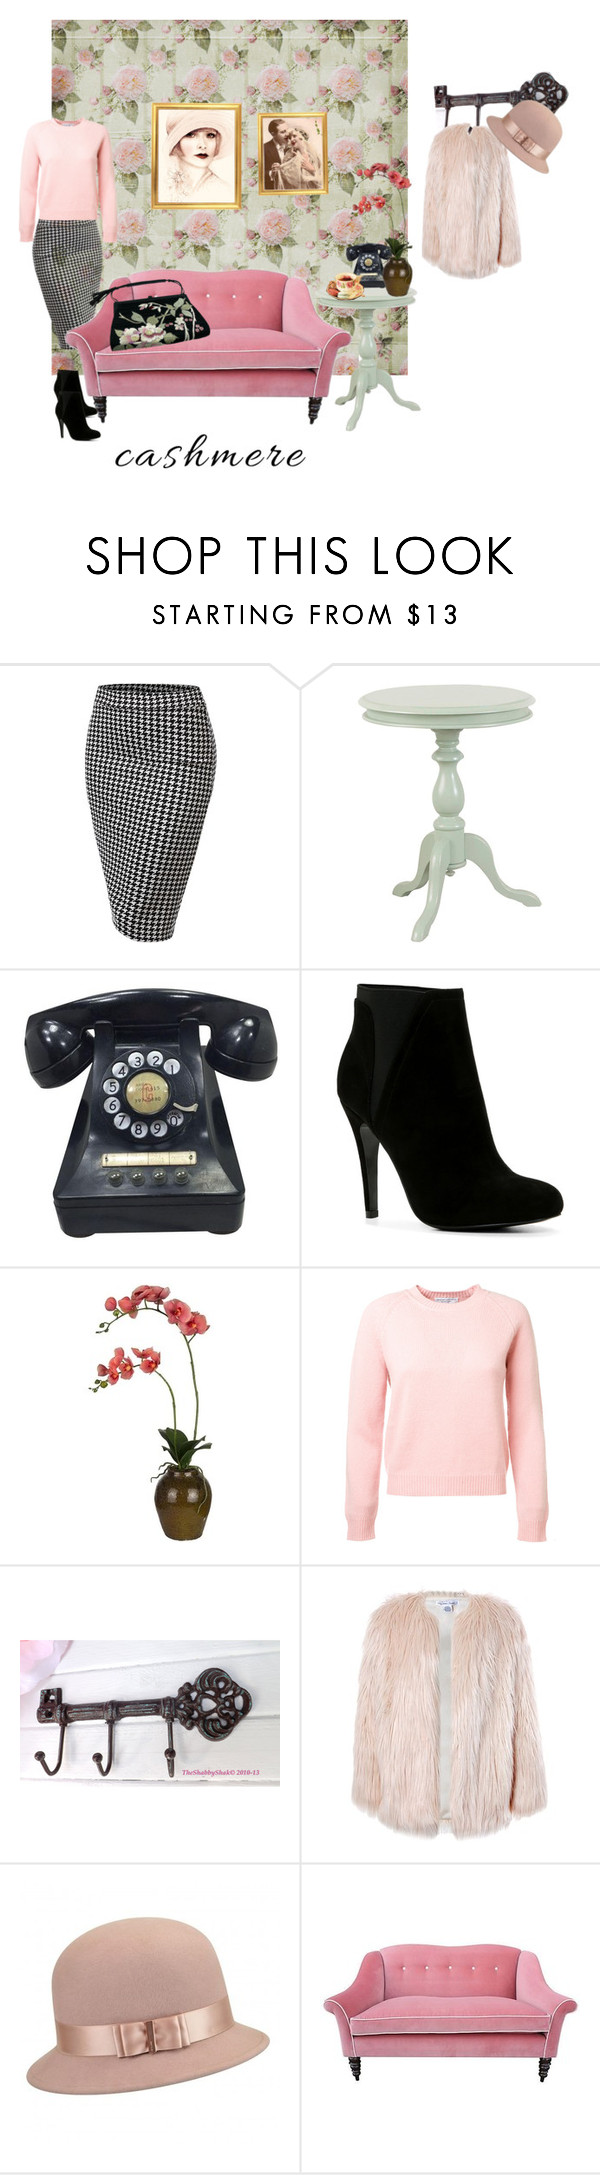 """""""Cashmere tea time"""" by eva-van-aardbei ❤ liked on Polyvore featuring ALDO, Sia, Sans Souci, Kim Salmela, Tom Ford, polyvoreeditorial and cashmere"""